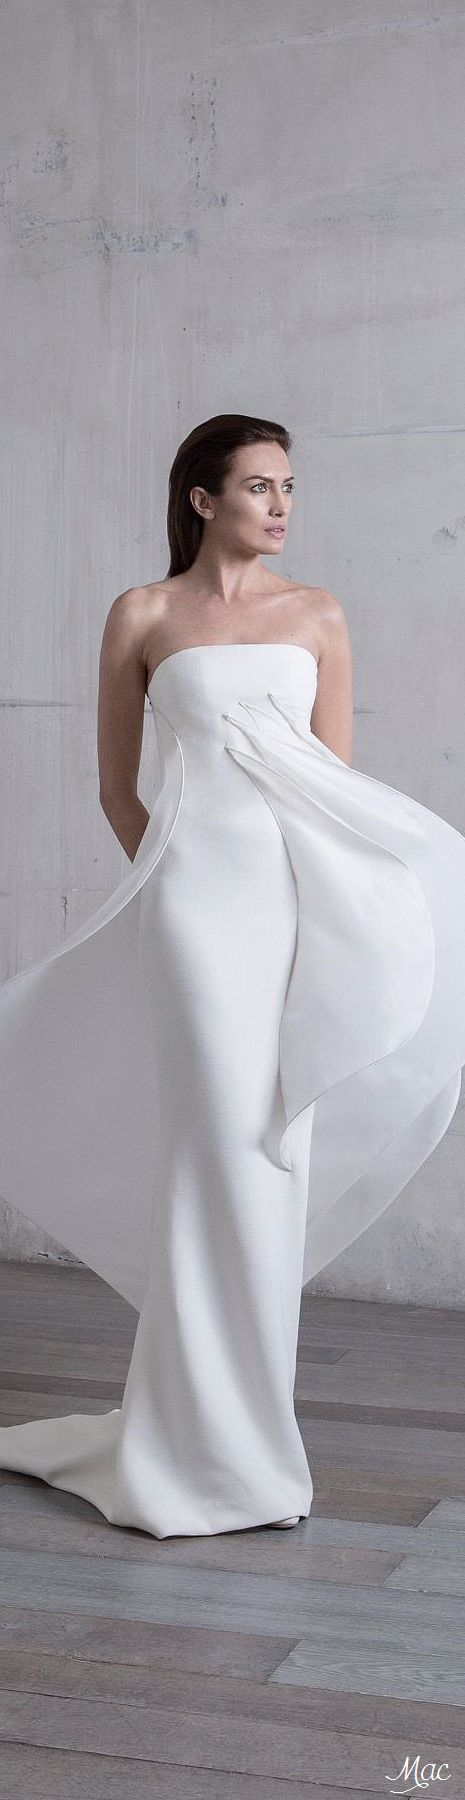 Spring 2017 Haute Couture Stéphane Rolland